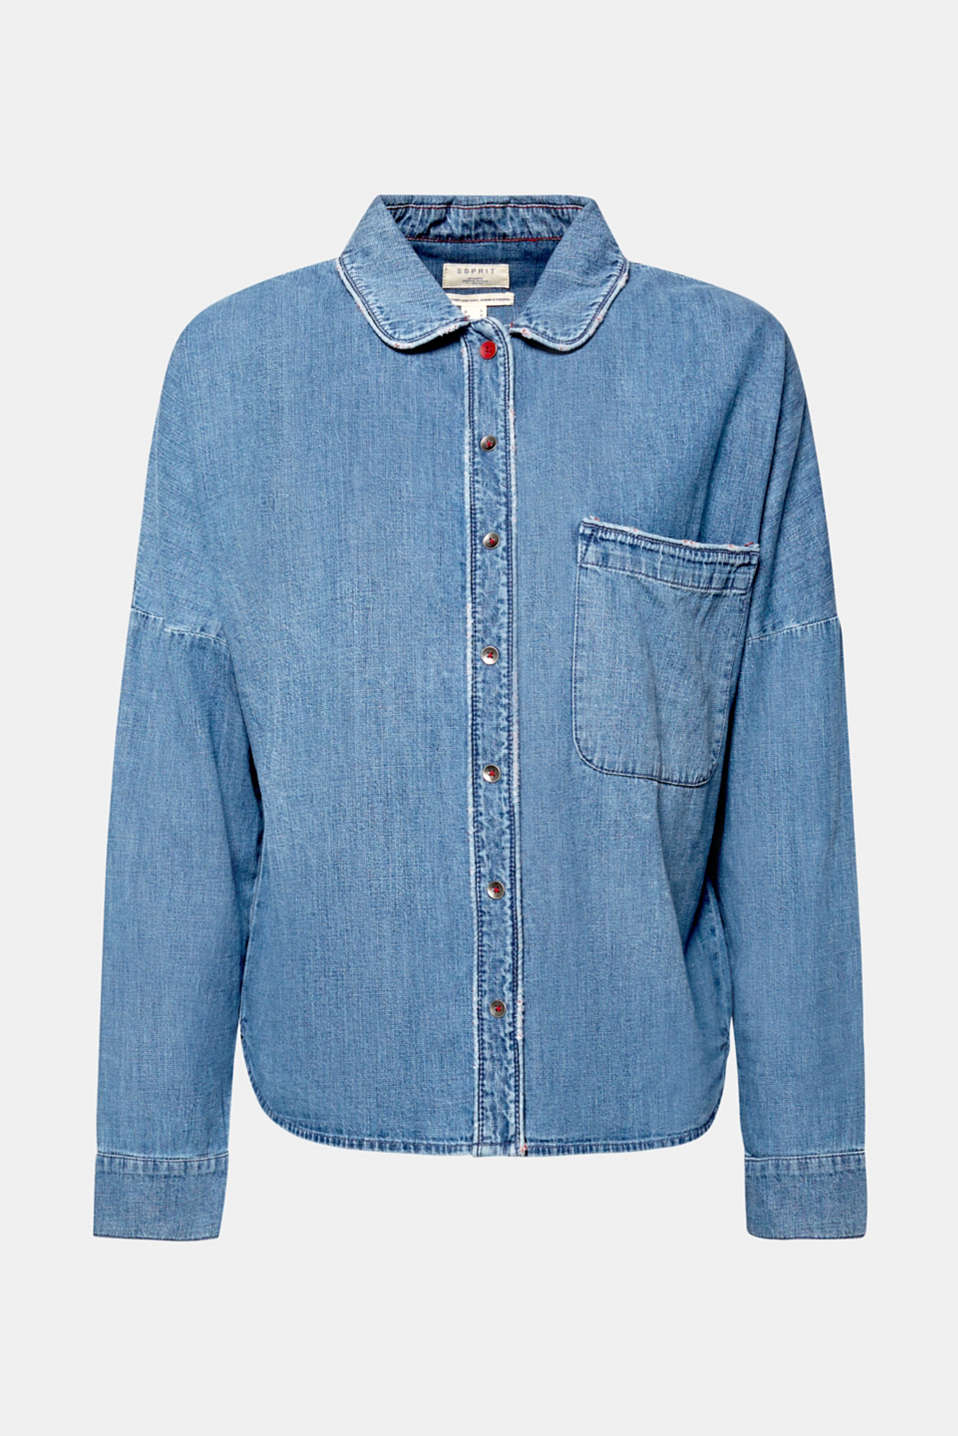 Blouses denim, BLUE MEDIUM WASH, detail image number 8